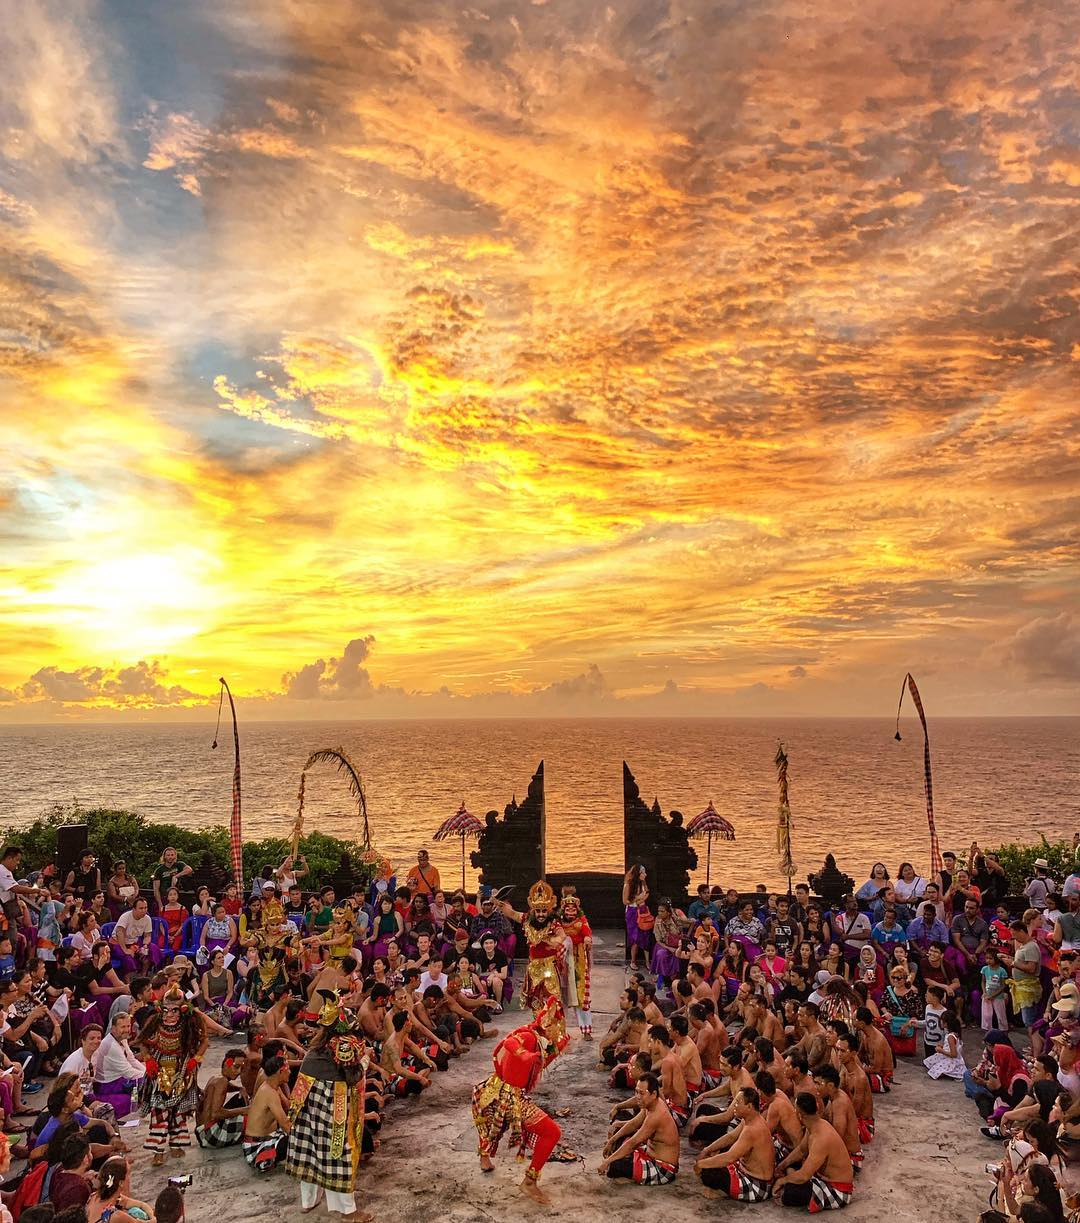 Sunset in Bali; Uluwatu Temple